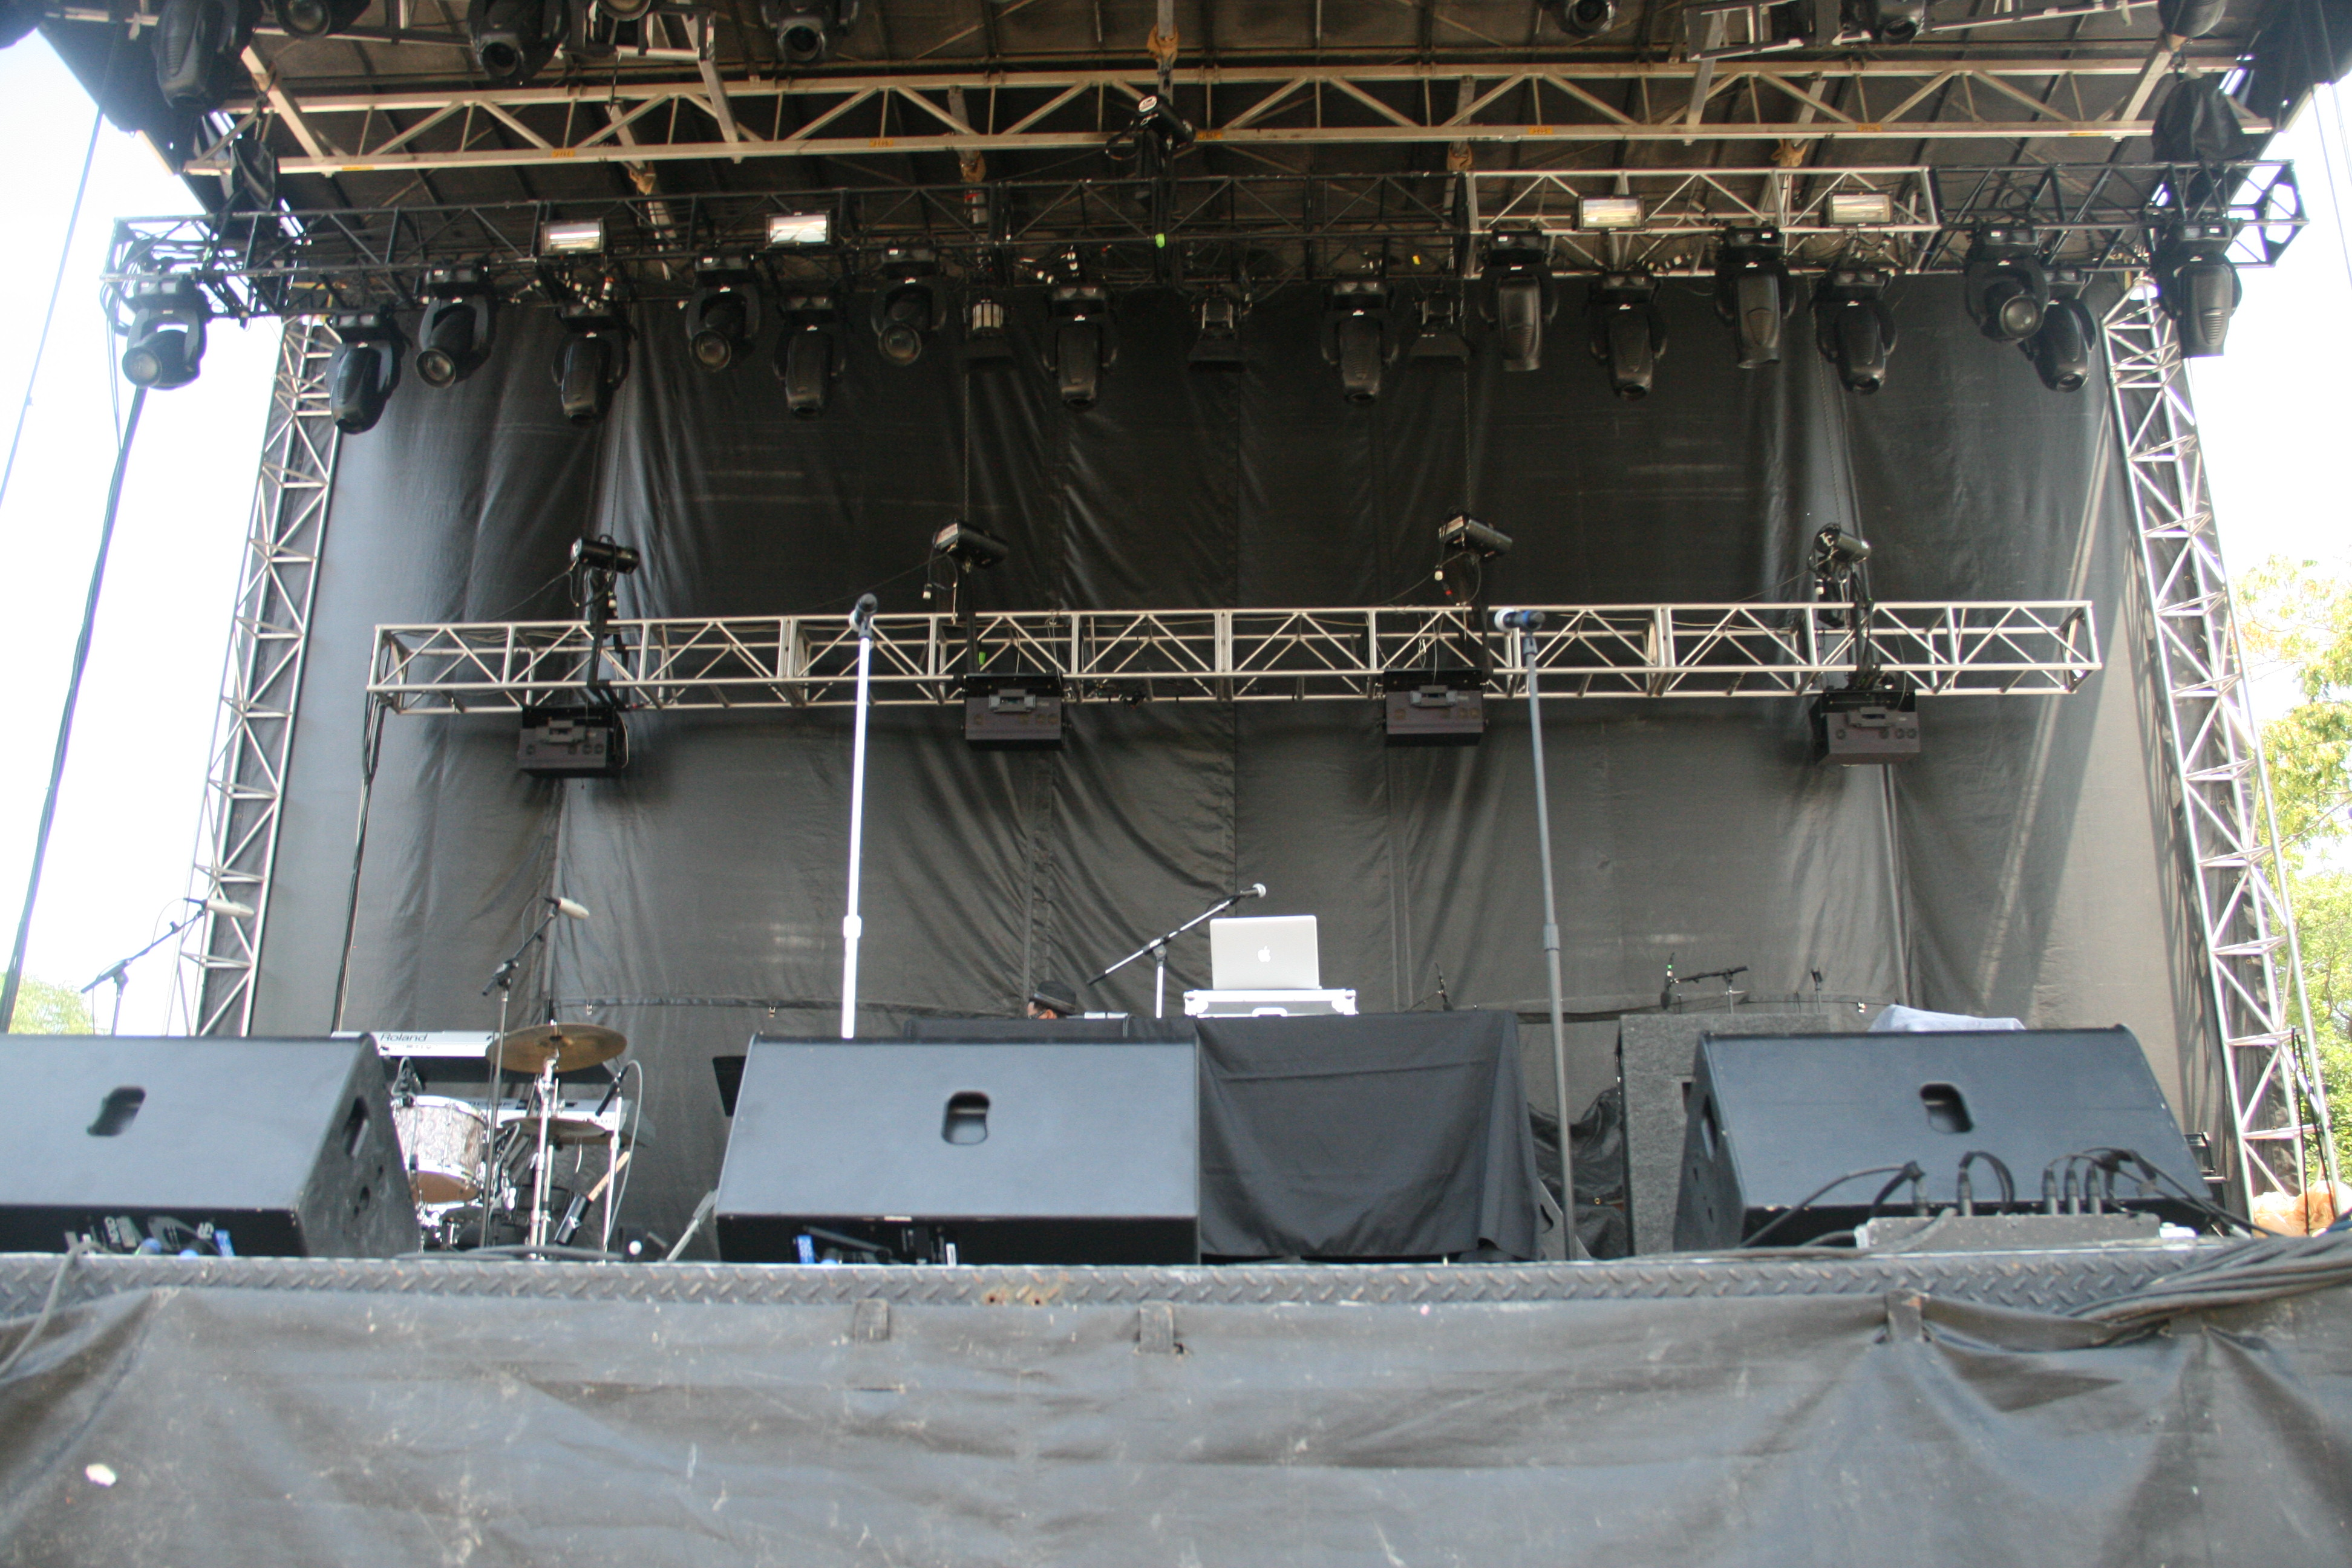 Empty outdoor rock stage - Userpostedimage